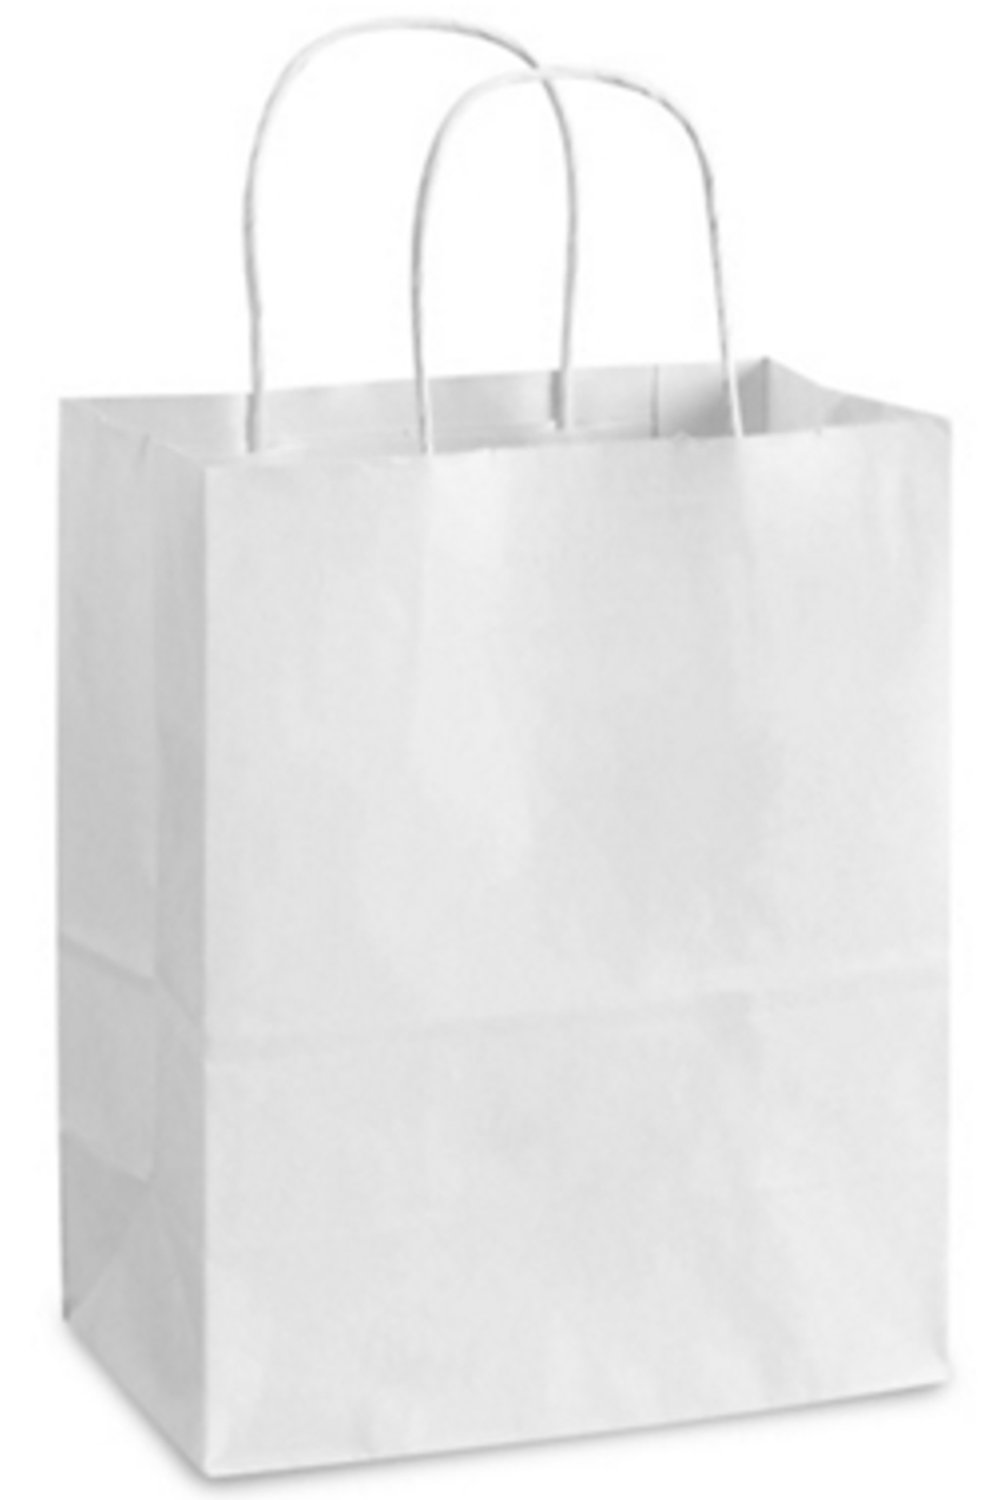 Paper Bag - Blank - $1 / w/ Stamp - $2.50No minimums